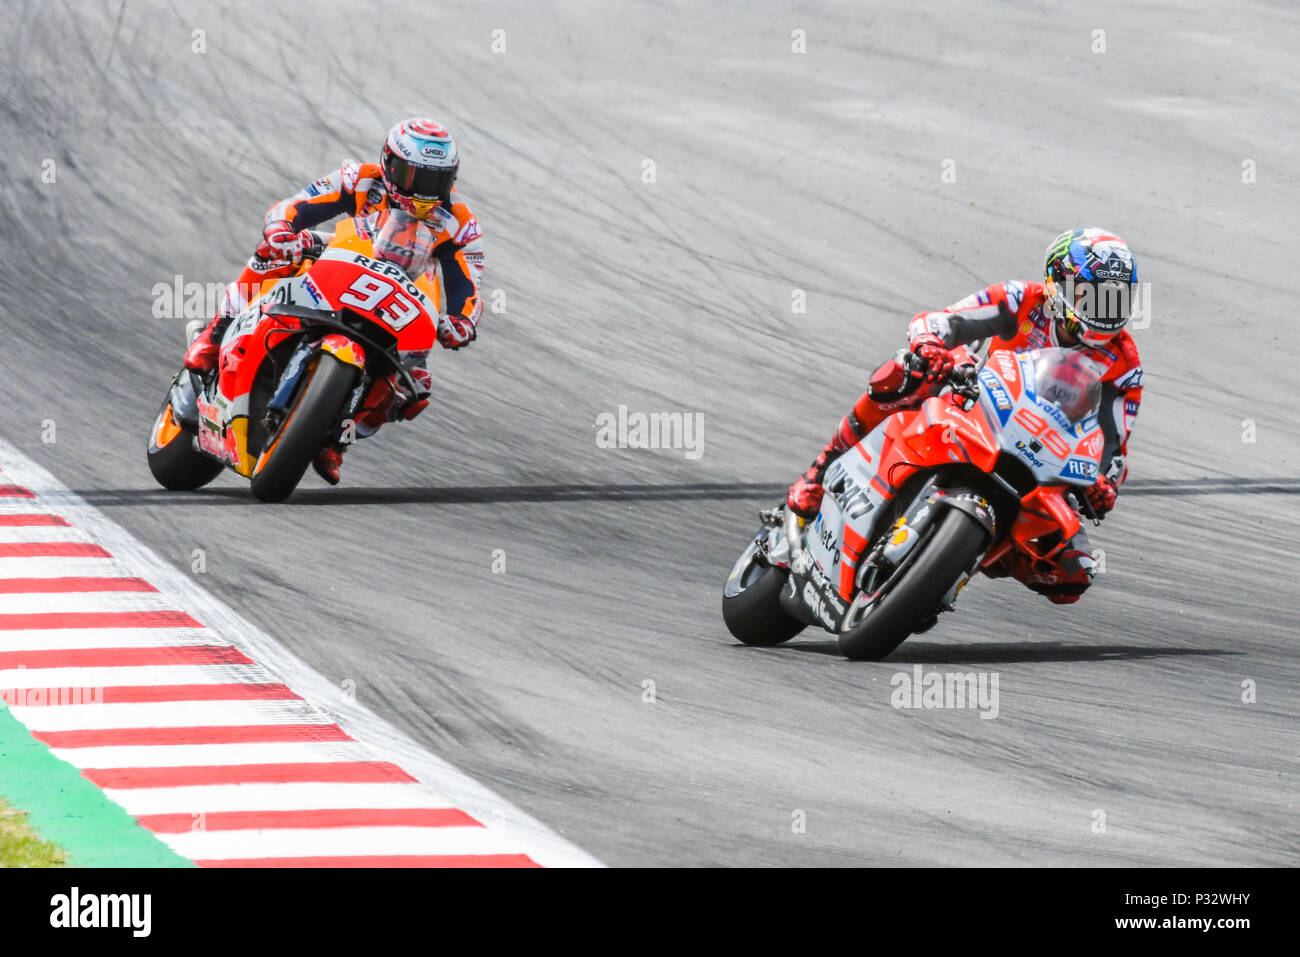 f45bca4d71c0d JORGE LORENZO (99) of Spain and MARC MARQUEZ (93) during the MotoGP